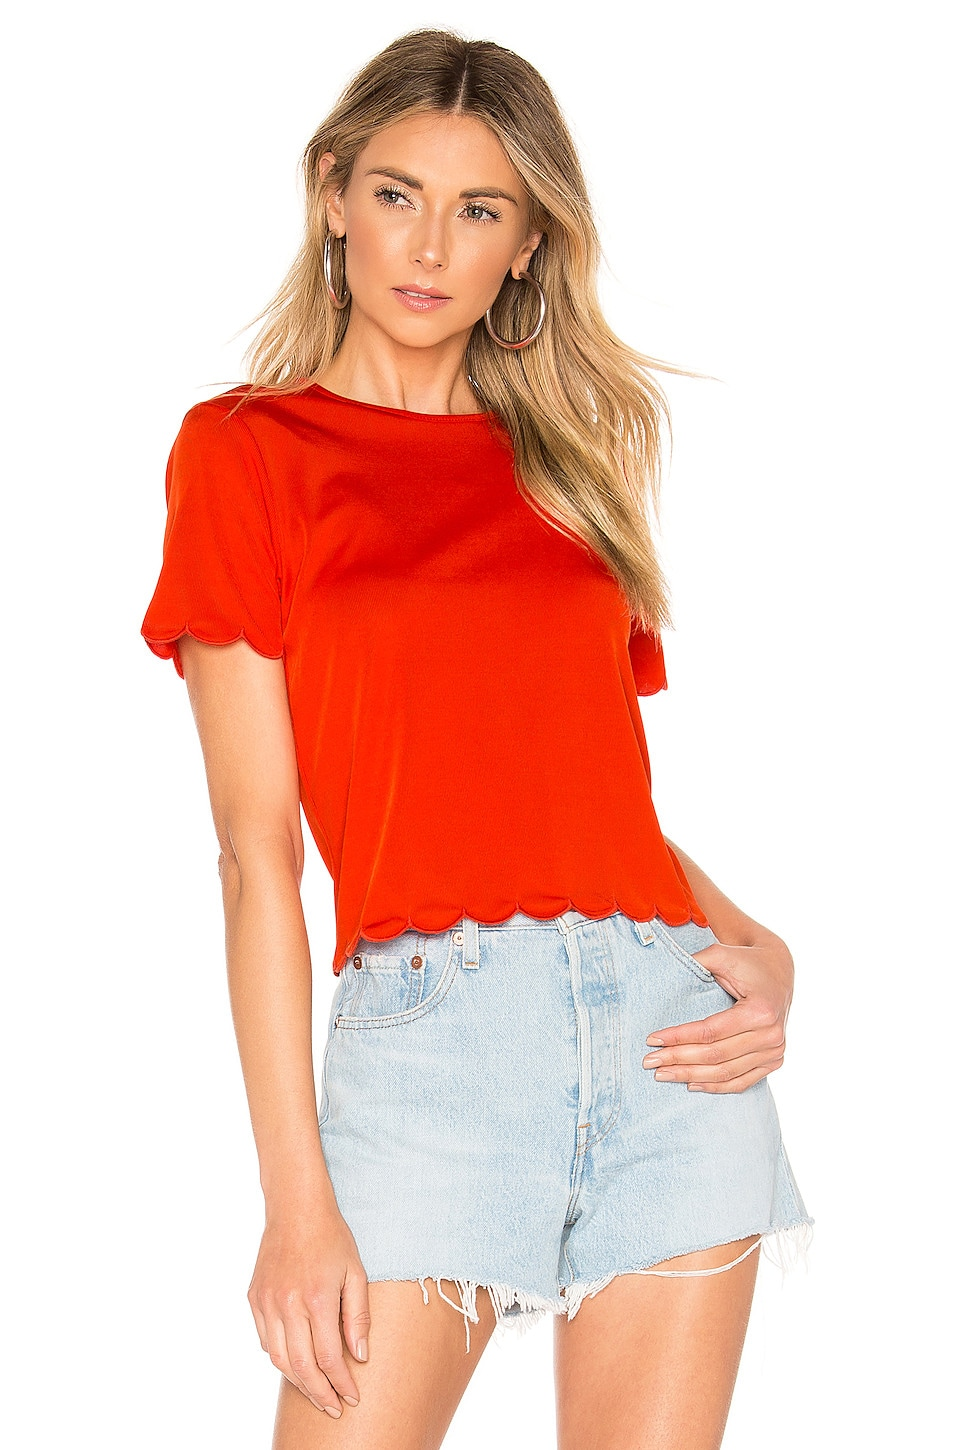 House of Harlow 1960 x REVOLVE Daan Tee in Red